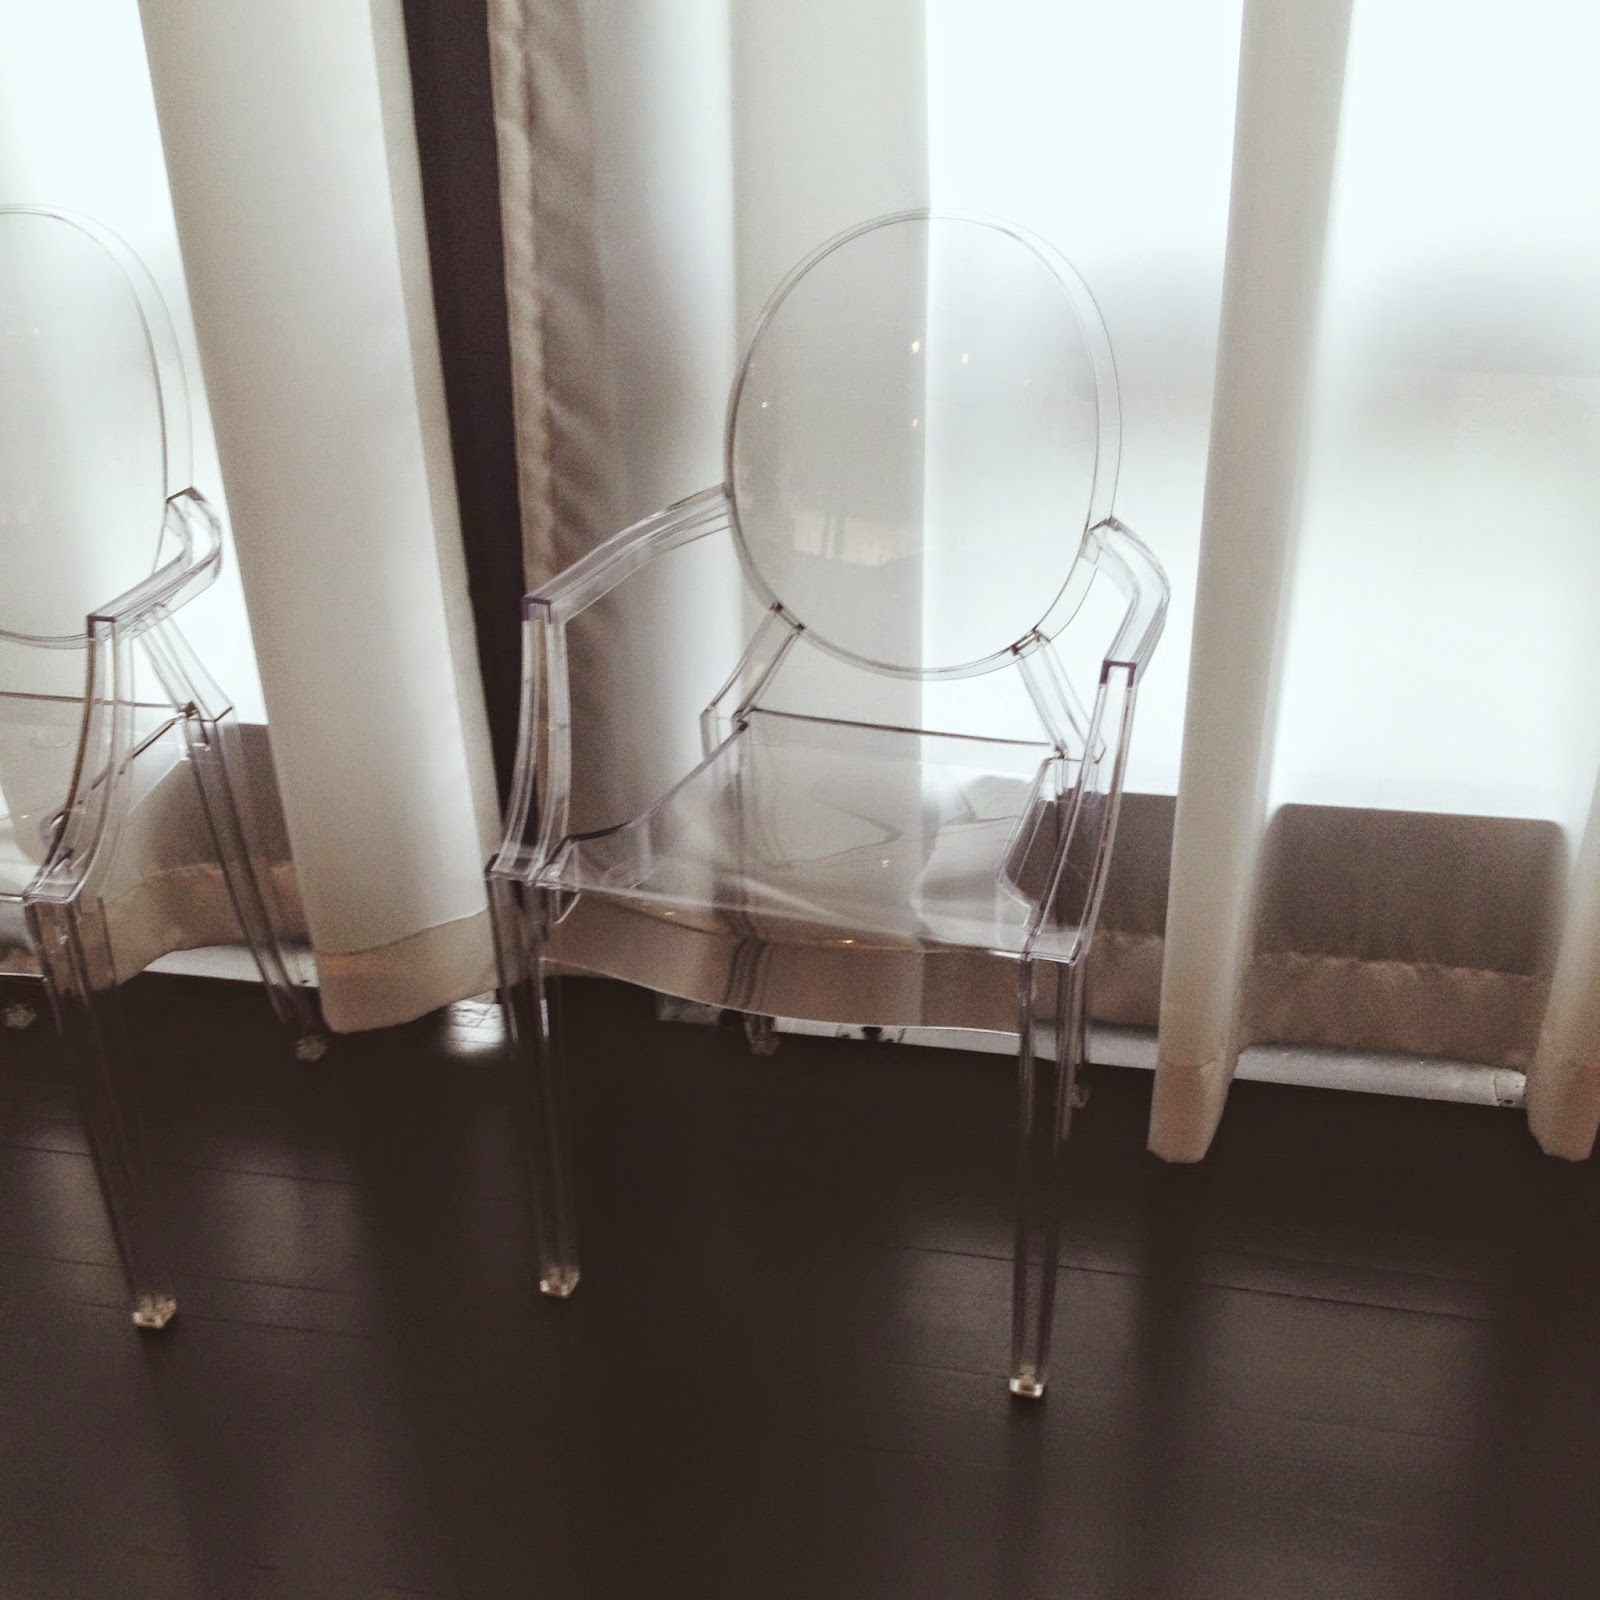 clear, plastic chairs